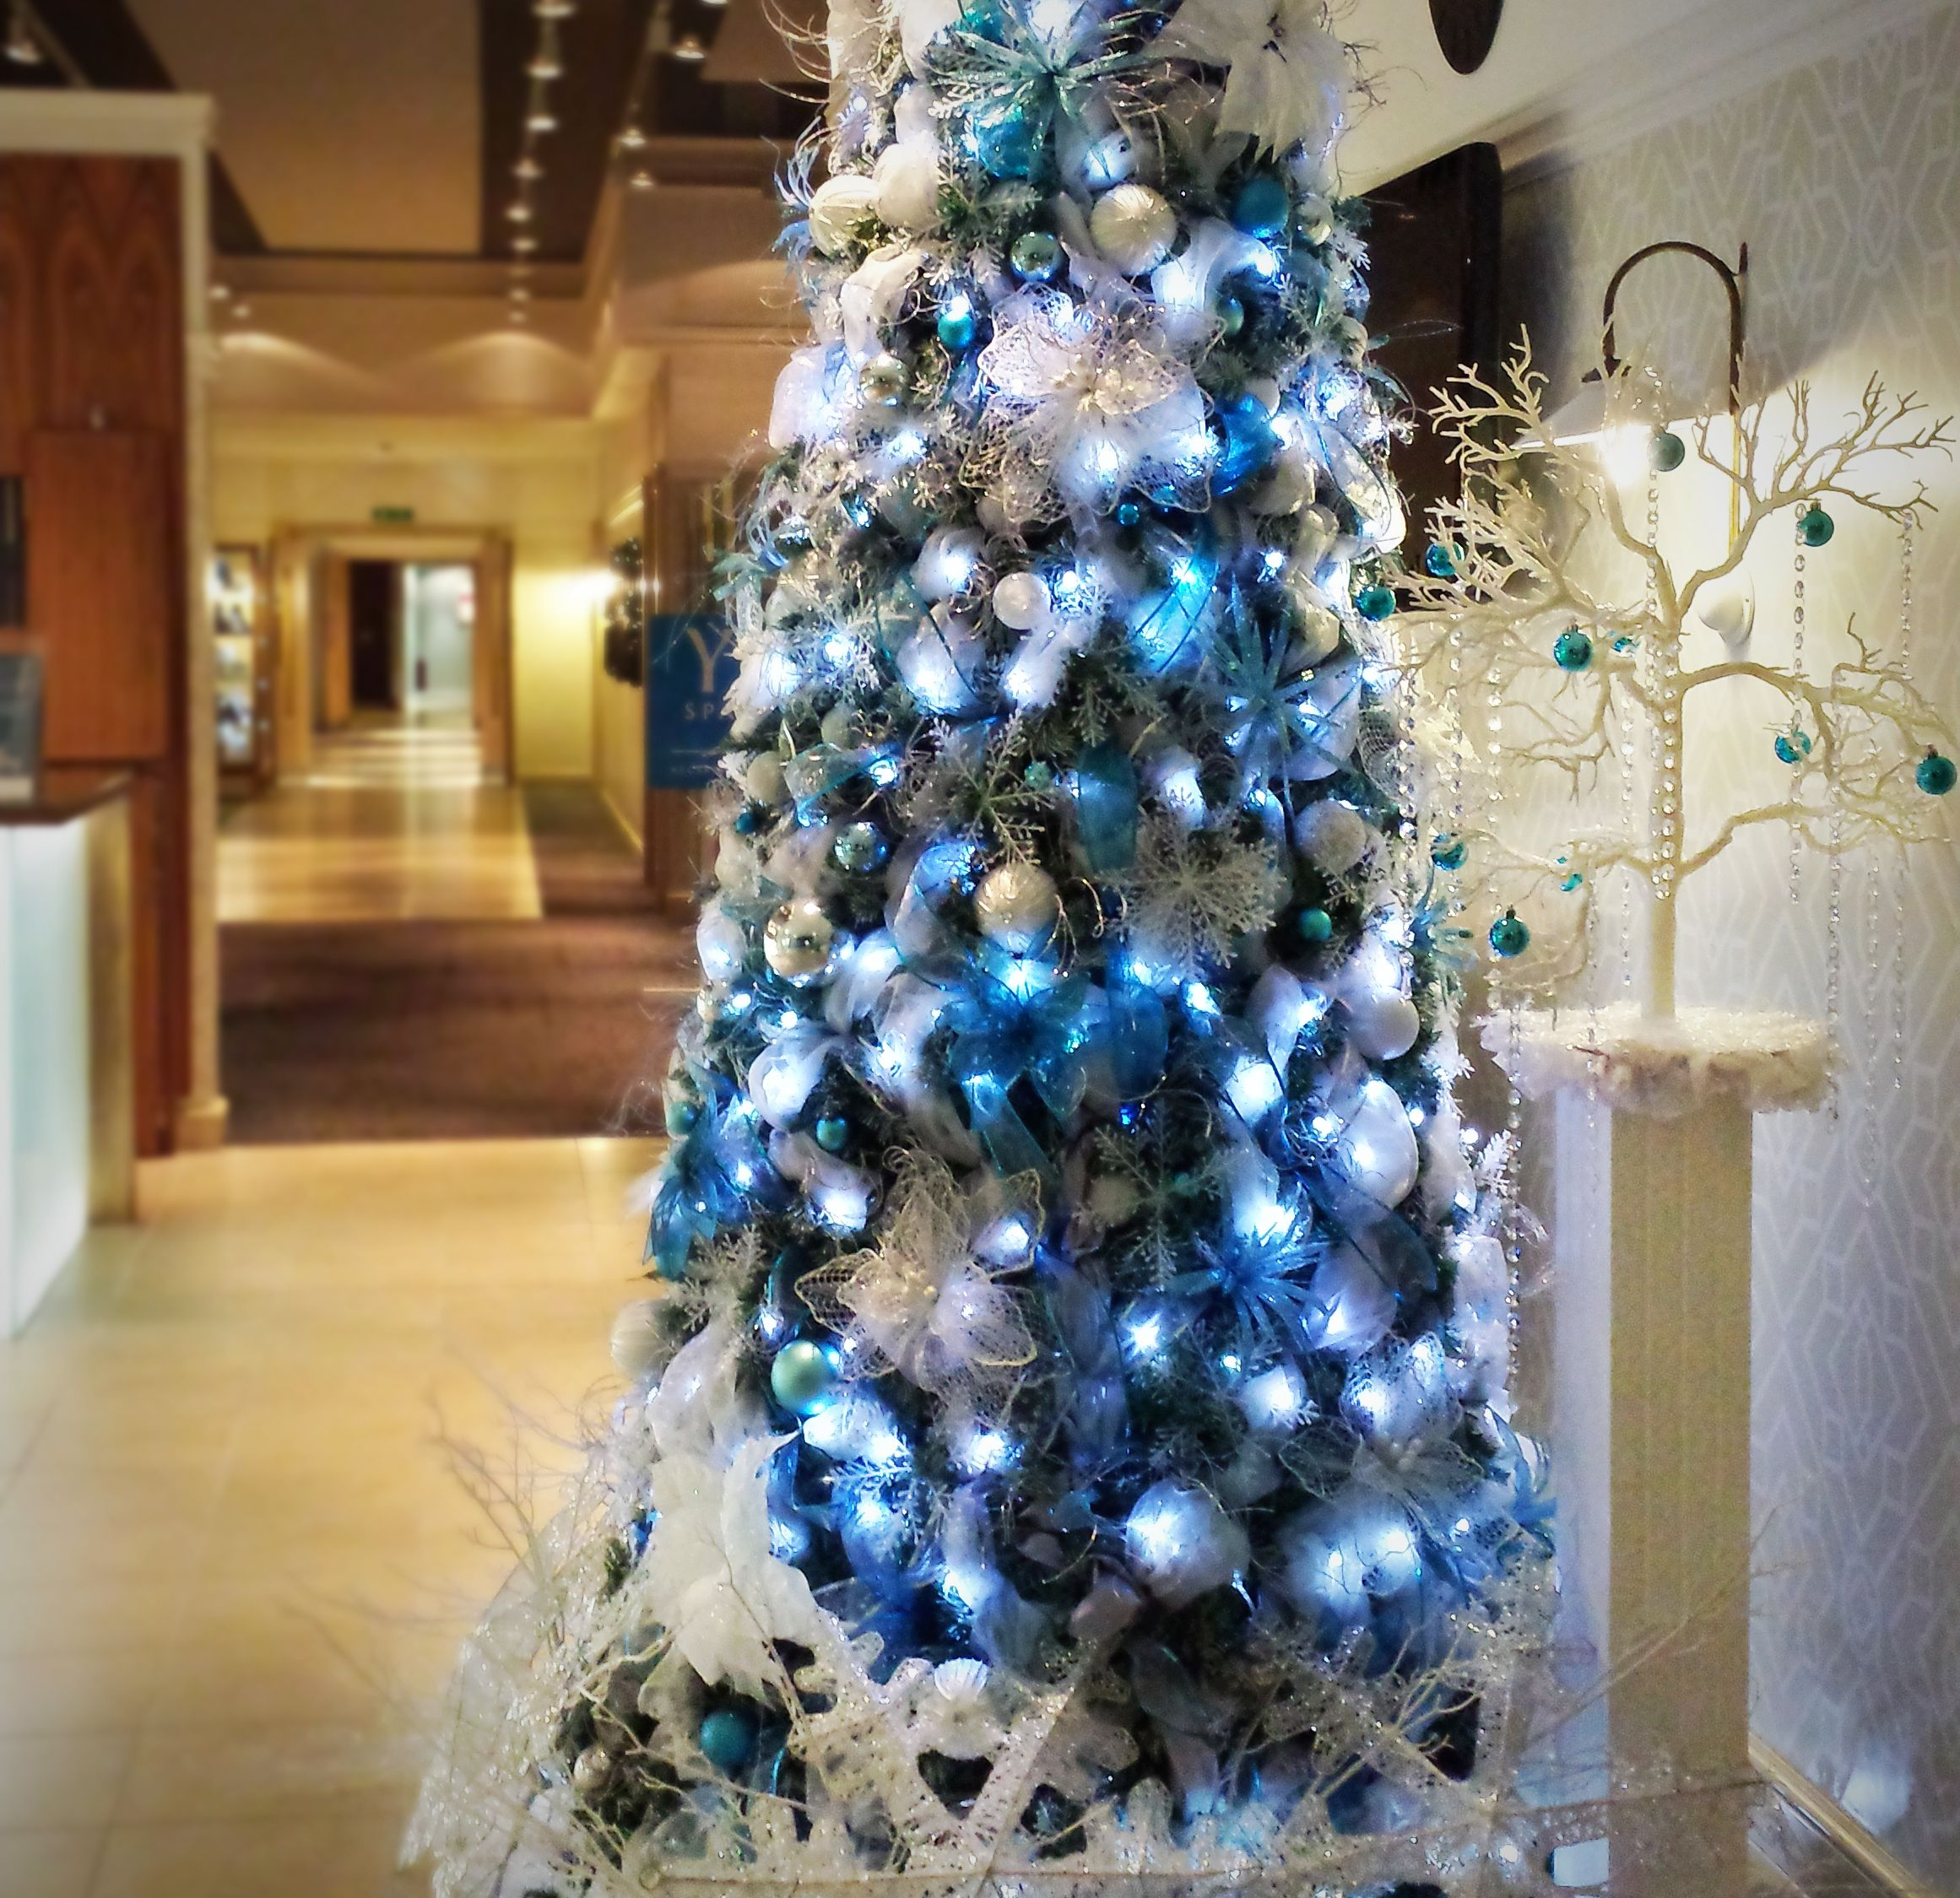 Tiffany Blue Luxury Christmas Tree For Hire Our Tiffany Blue Luxury Christma Commercial Christmas Decorations Luxury Christmas Tree Christmas Tree Decorations